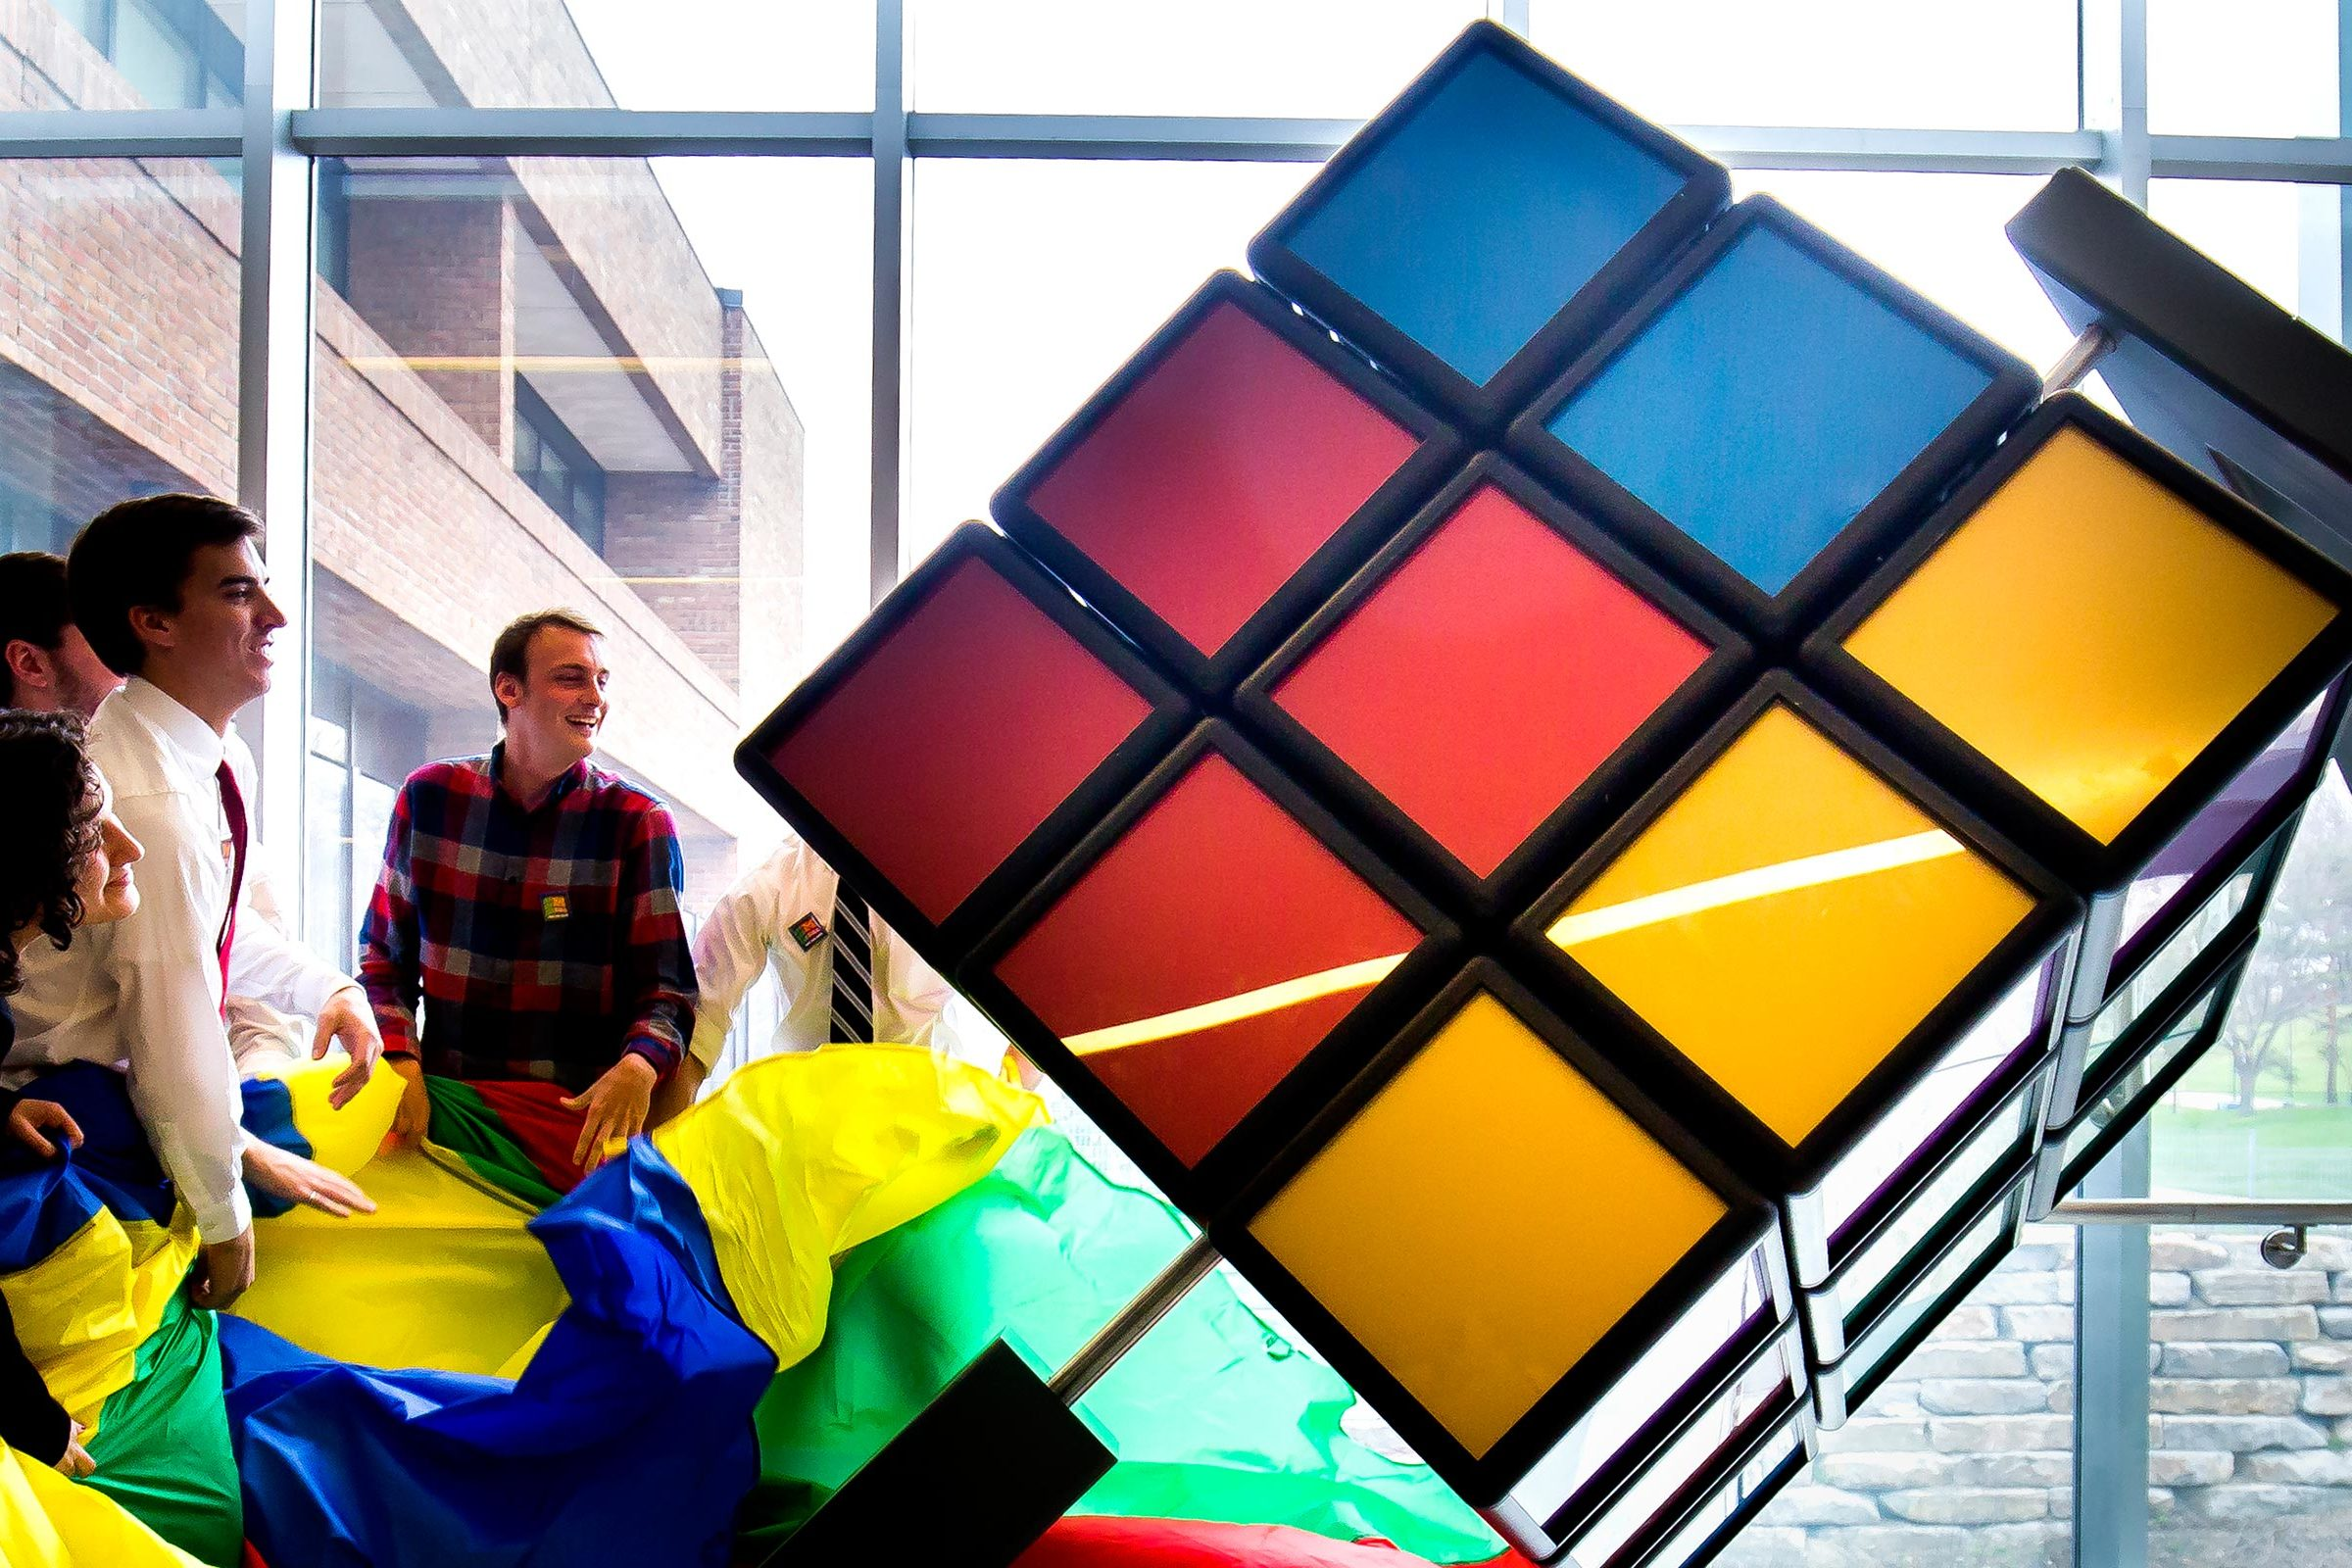 Giant Rubiks Cube is unveiled